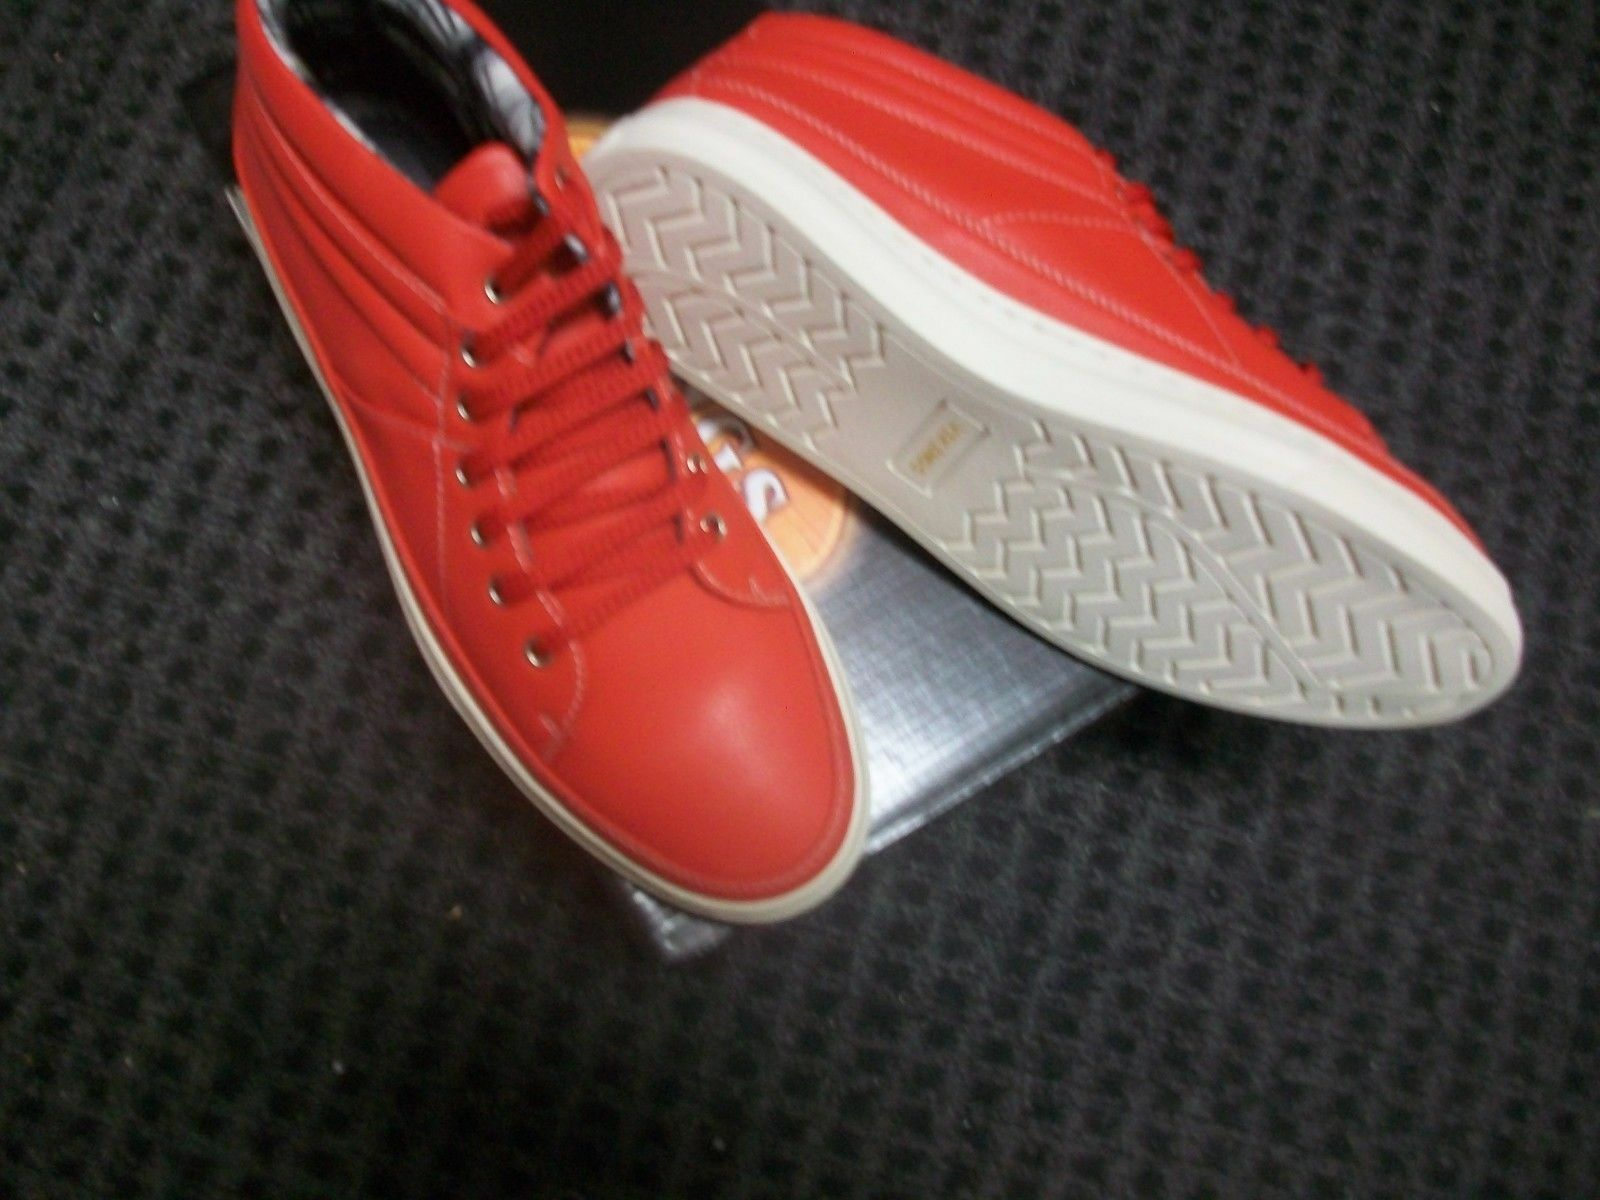 New Men's Vikings Red - White Casual Brand Sneaker Shoes Size 13 Brand Casual New! 7c346e